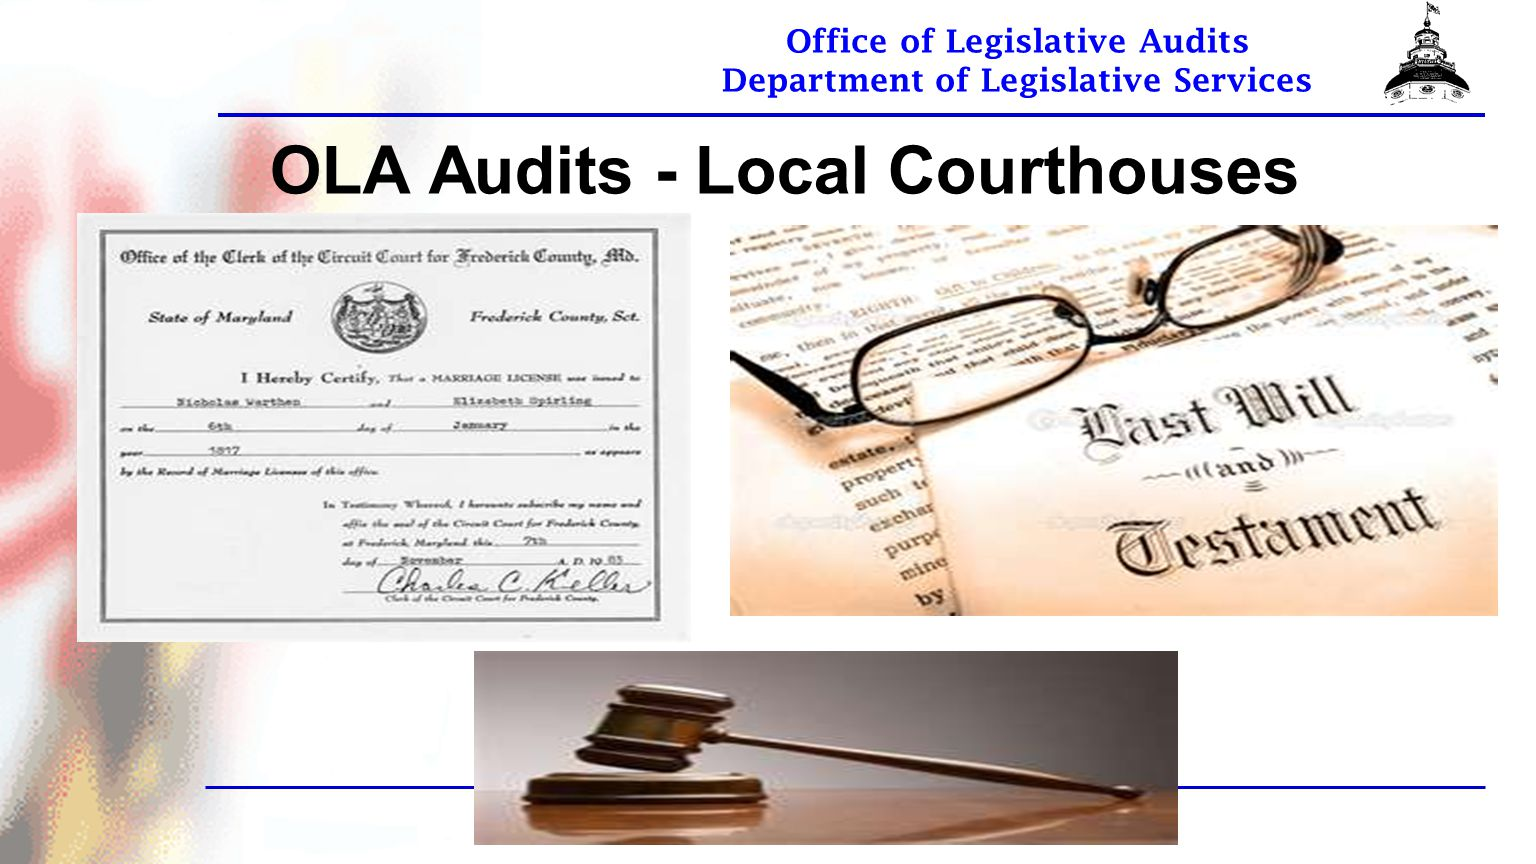 Office of Legislative Audits Department of Legislative Services OLA Audits - Local Courthouses